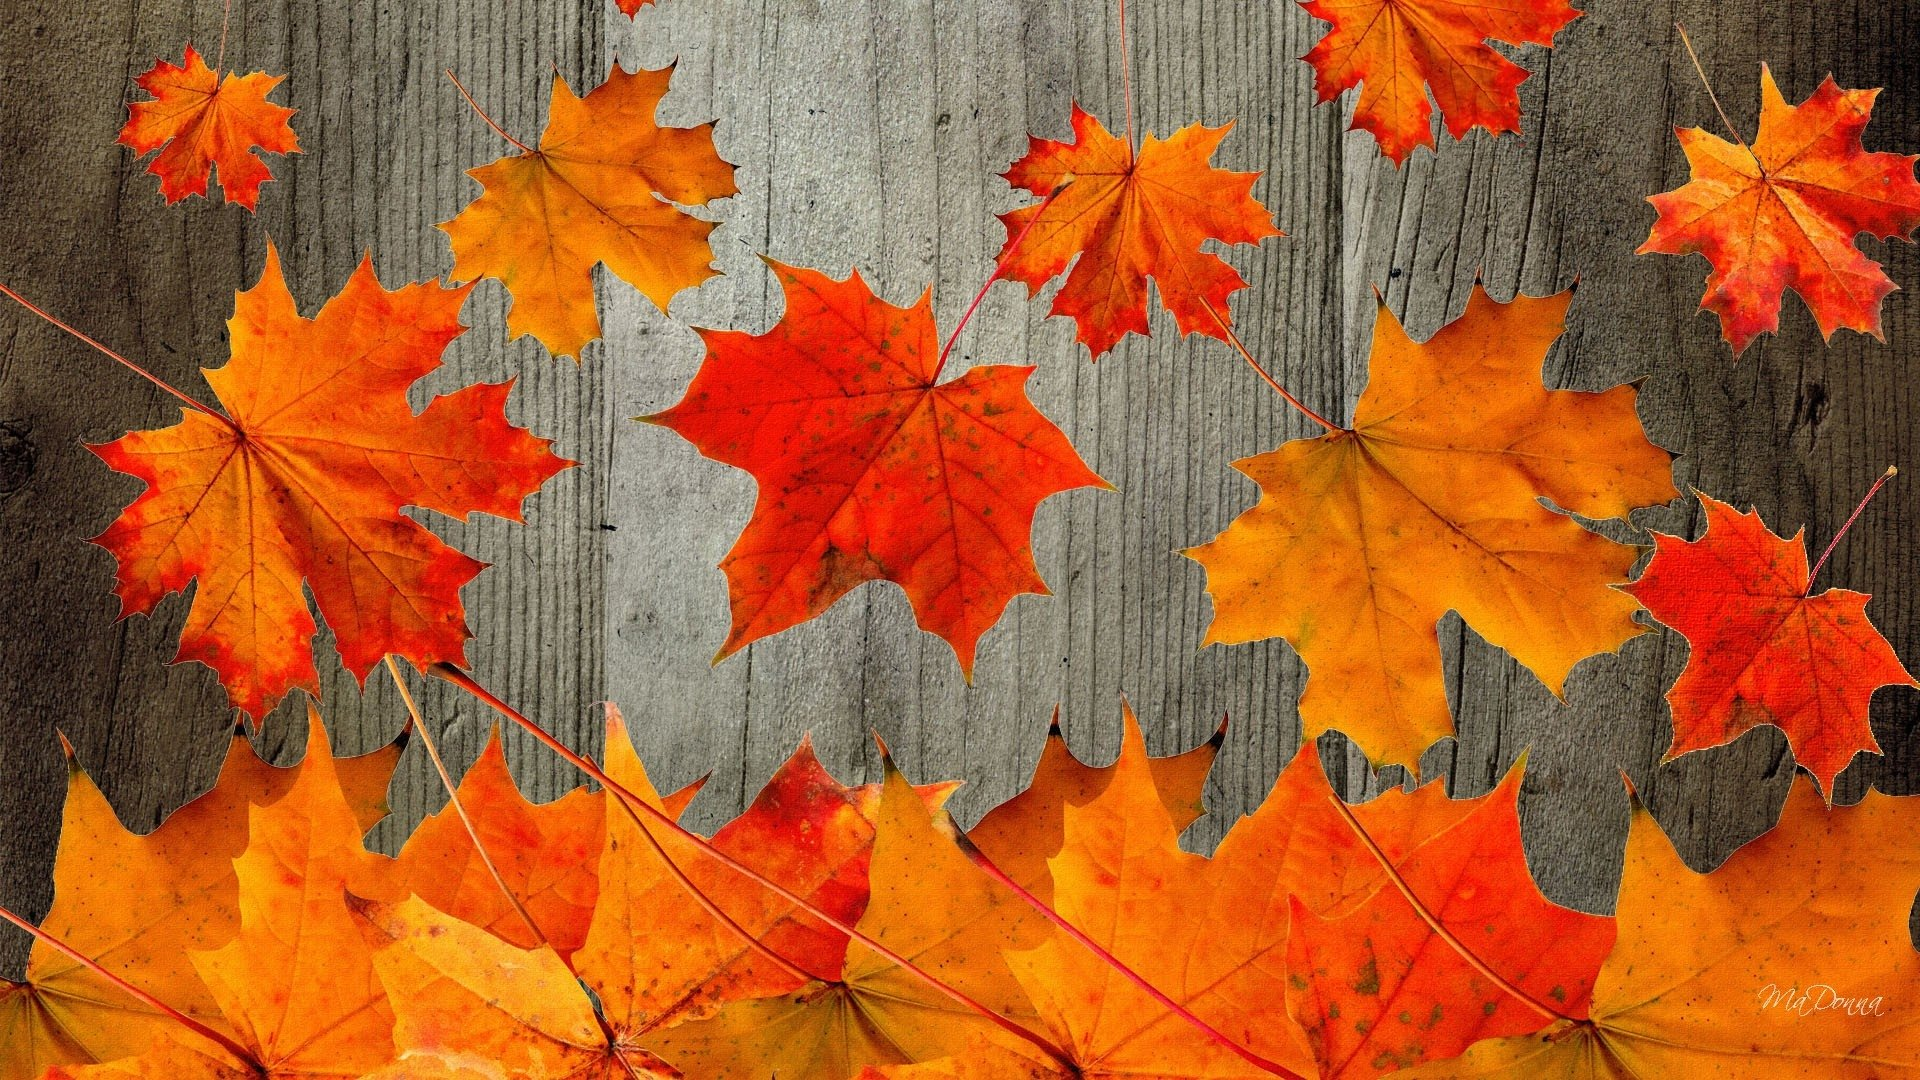 Computer Fall Pc Backgrounds 128470   HD Wallpaper Download 1920x1080